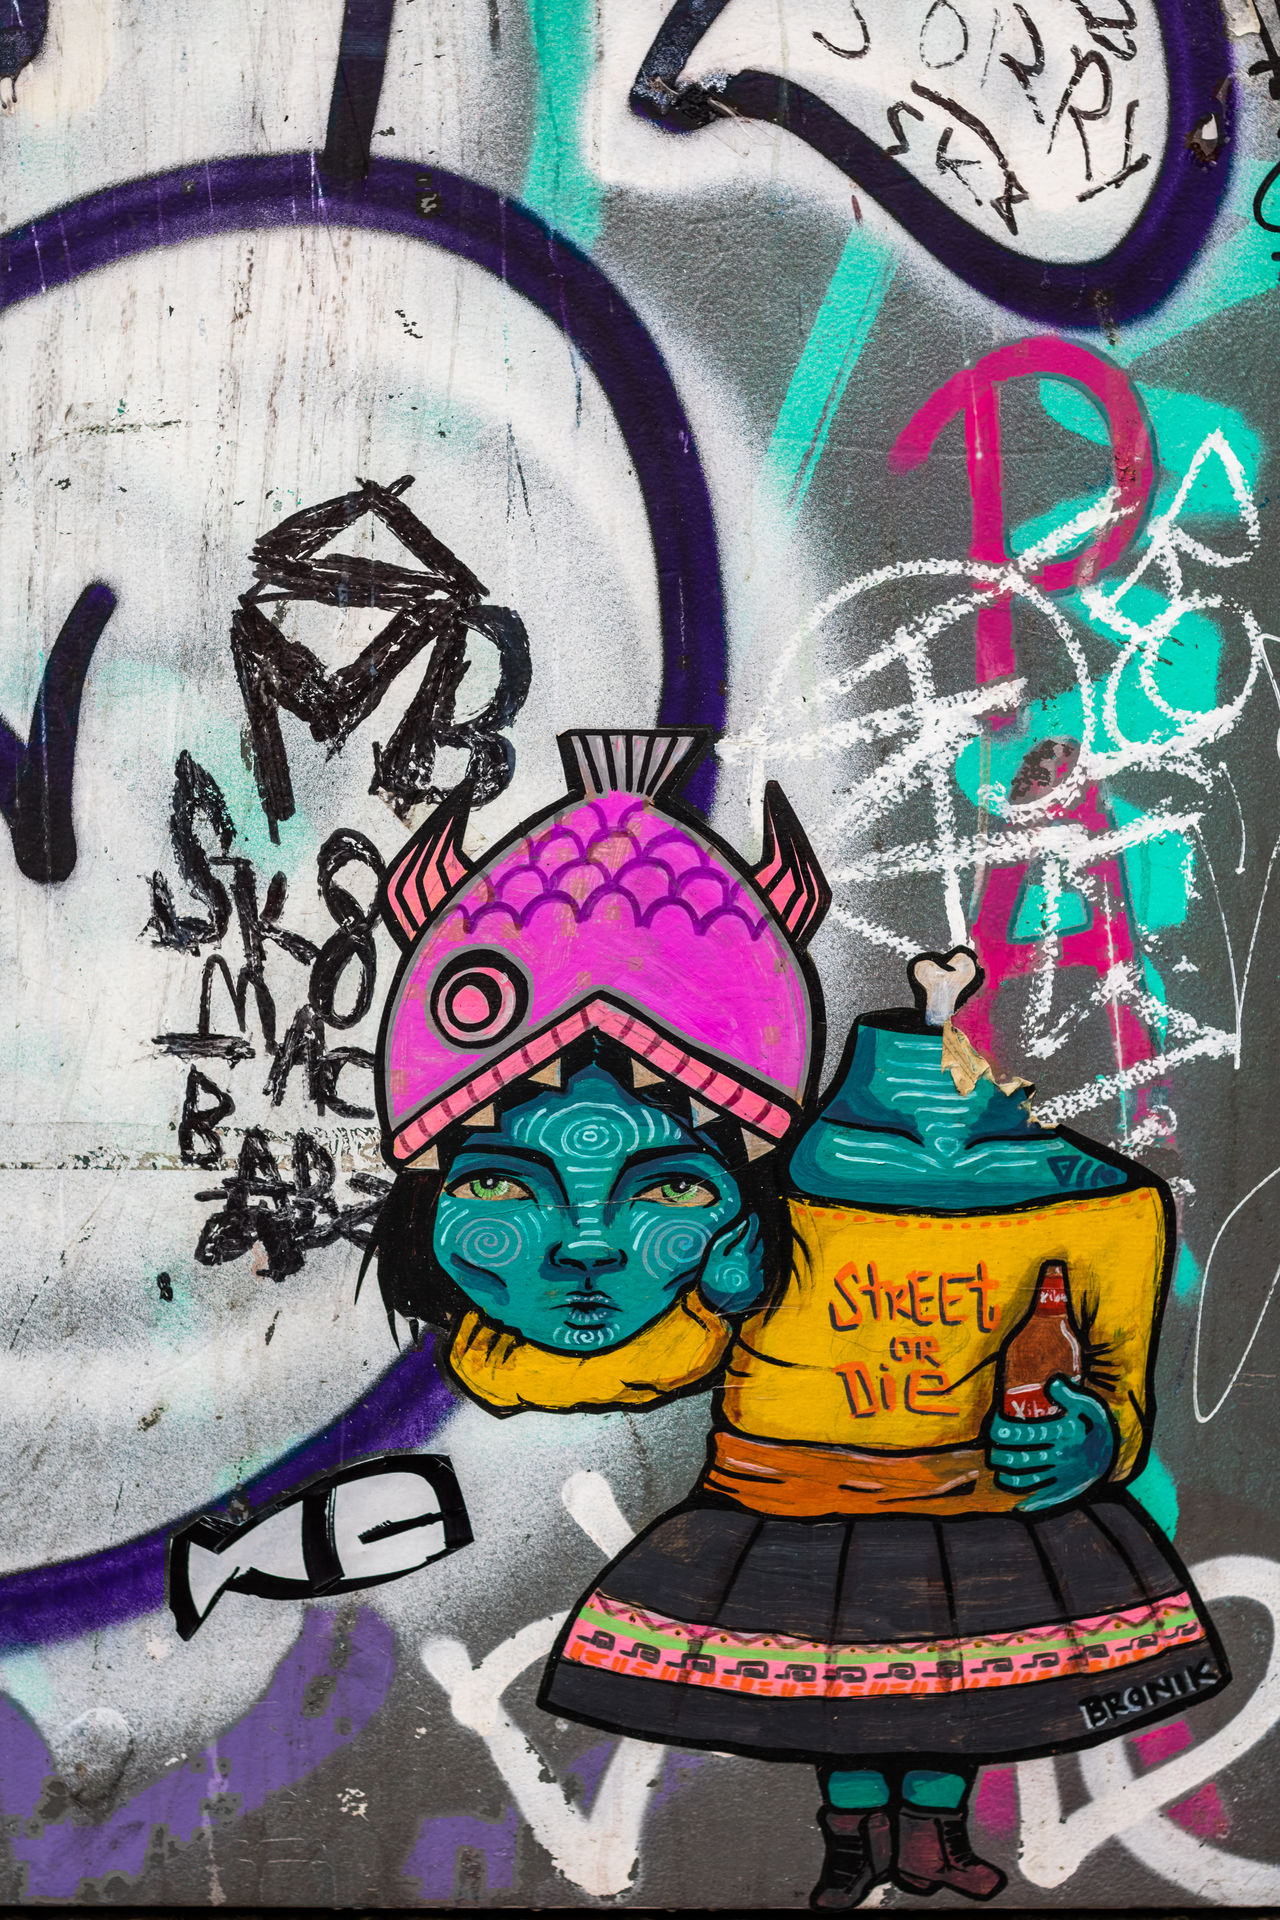 Artwork by BRONIK Graffiti Multi Colored Creativity Art And Craft Drawing - Art Product Close-up Text No People Outdoors Day Wall - Building Feature Street Art City Street Print Made With Paper Stick Intervention Cultures Portrait Of A City Barcelona Street Photography Textures Of Barcelona Grafitti Stencil Architecture Millennial Pink